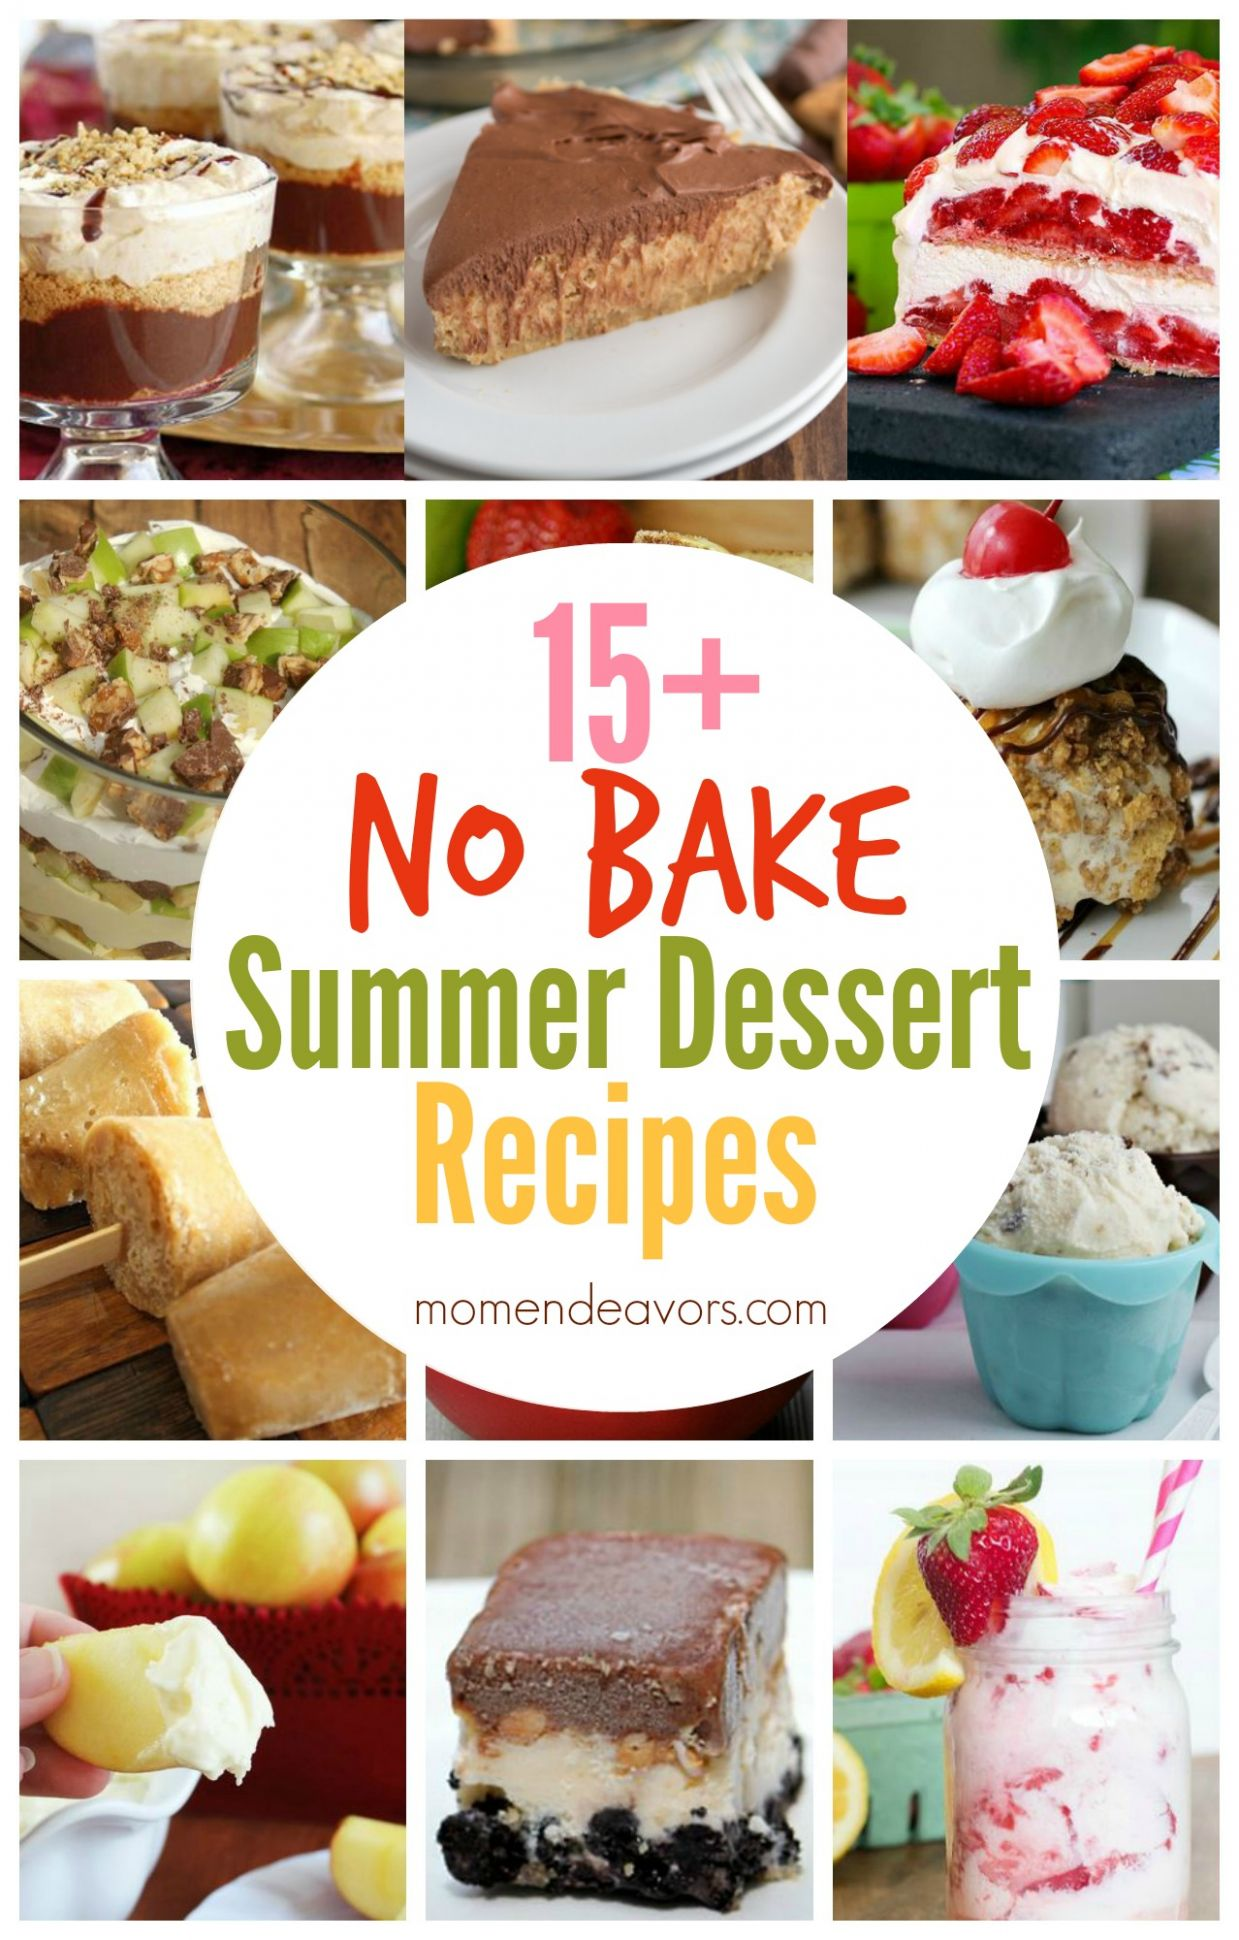 11+ No Bake Summer Dessert Recipes - Mom Endeavors - Recipes Summer Desserts